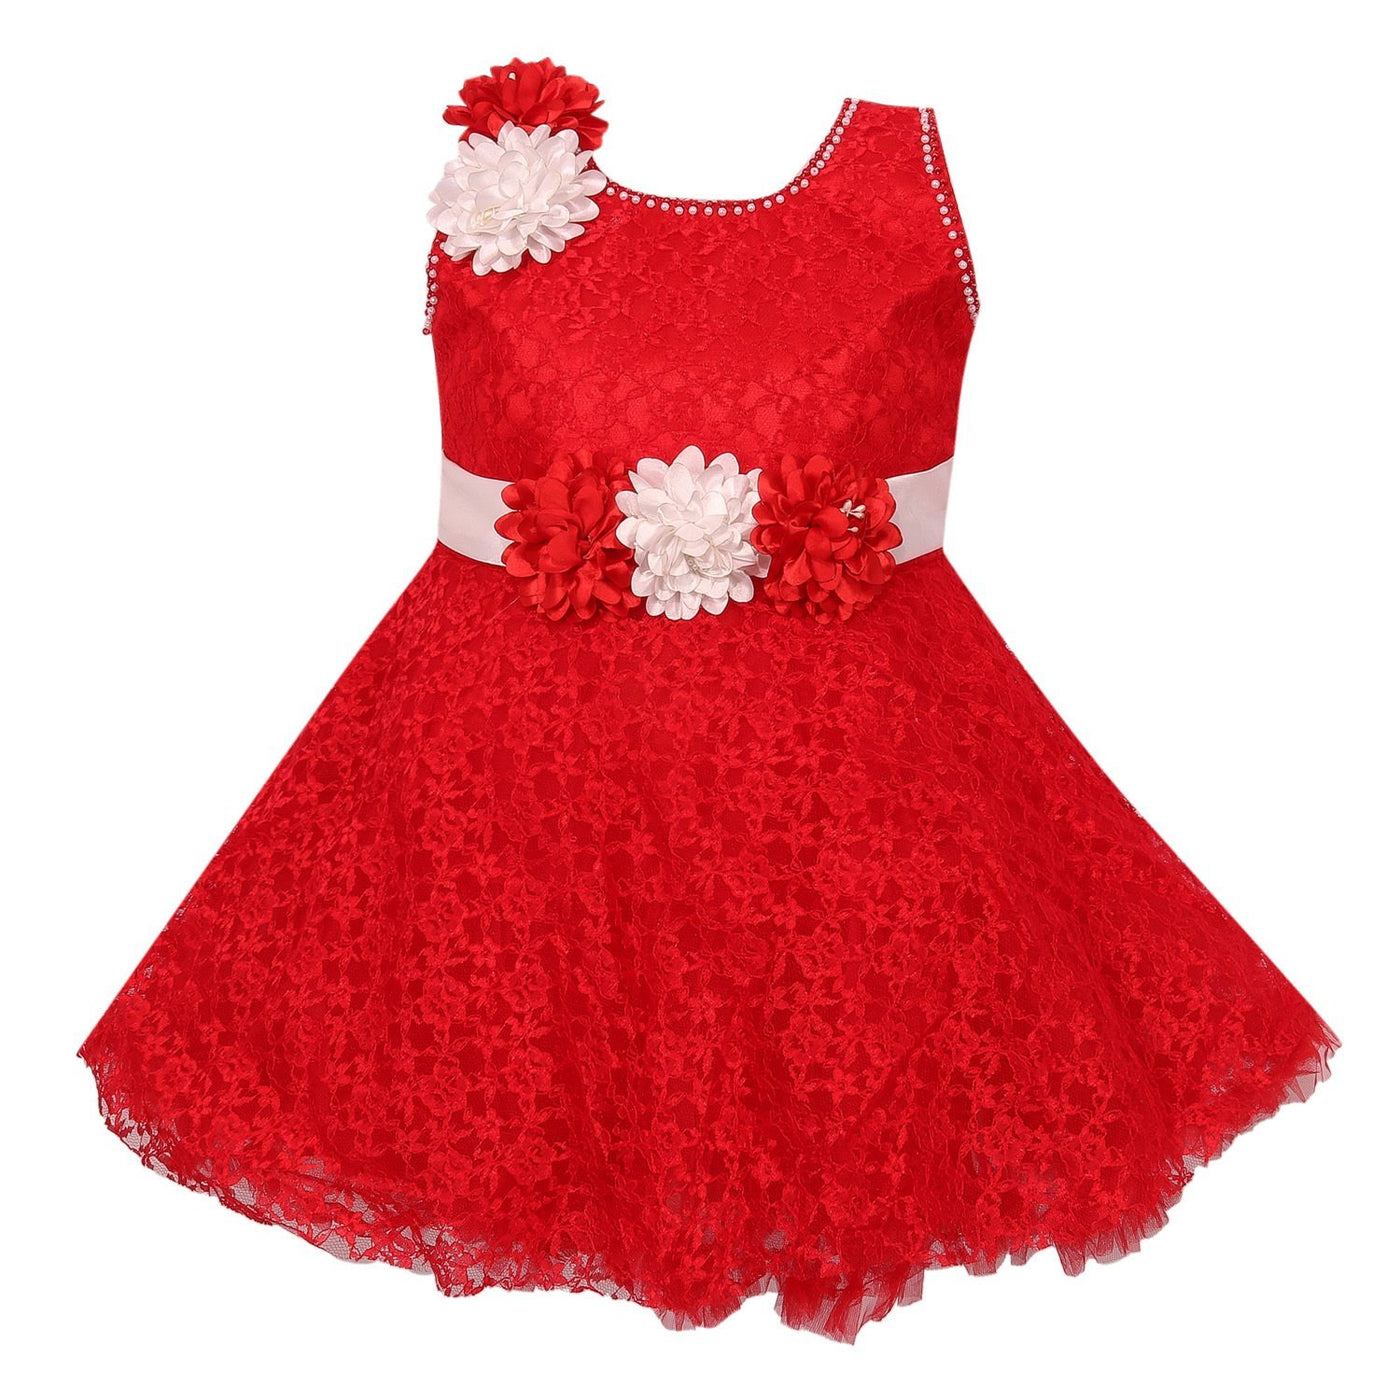 9d407bb71 Baby Girls Party Wear Frock Dress DN Bxa36rd - Wish Karo Dresses ...